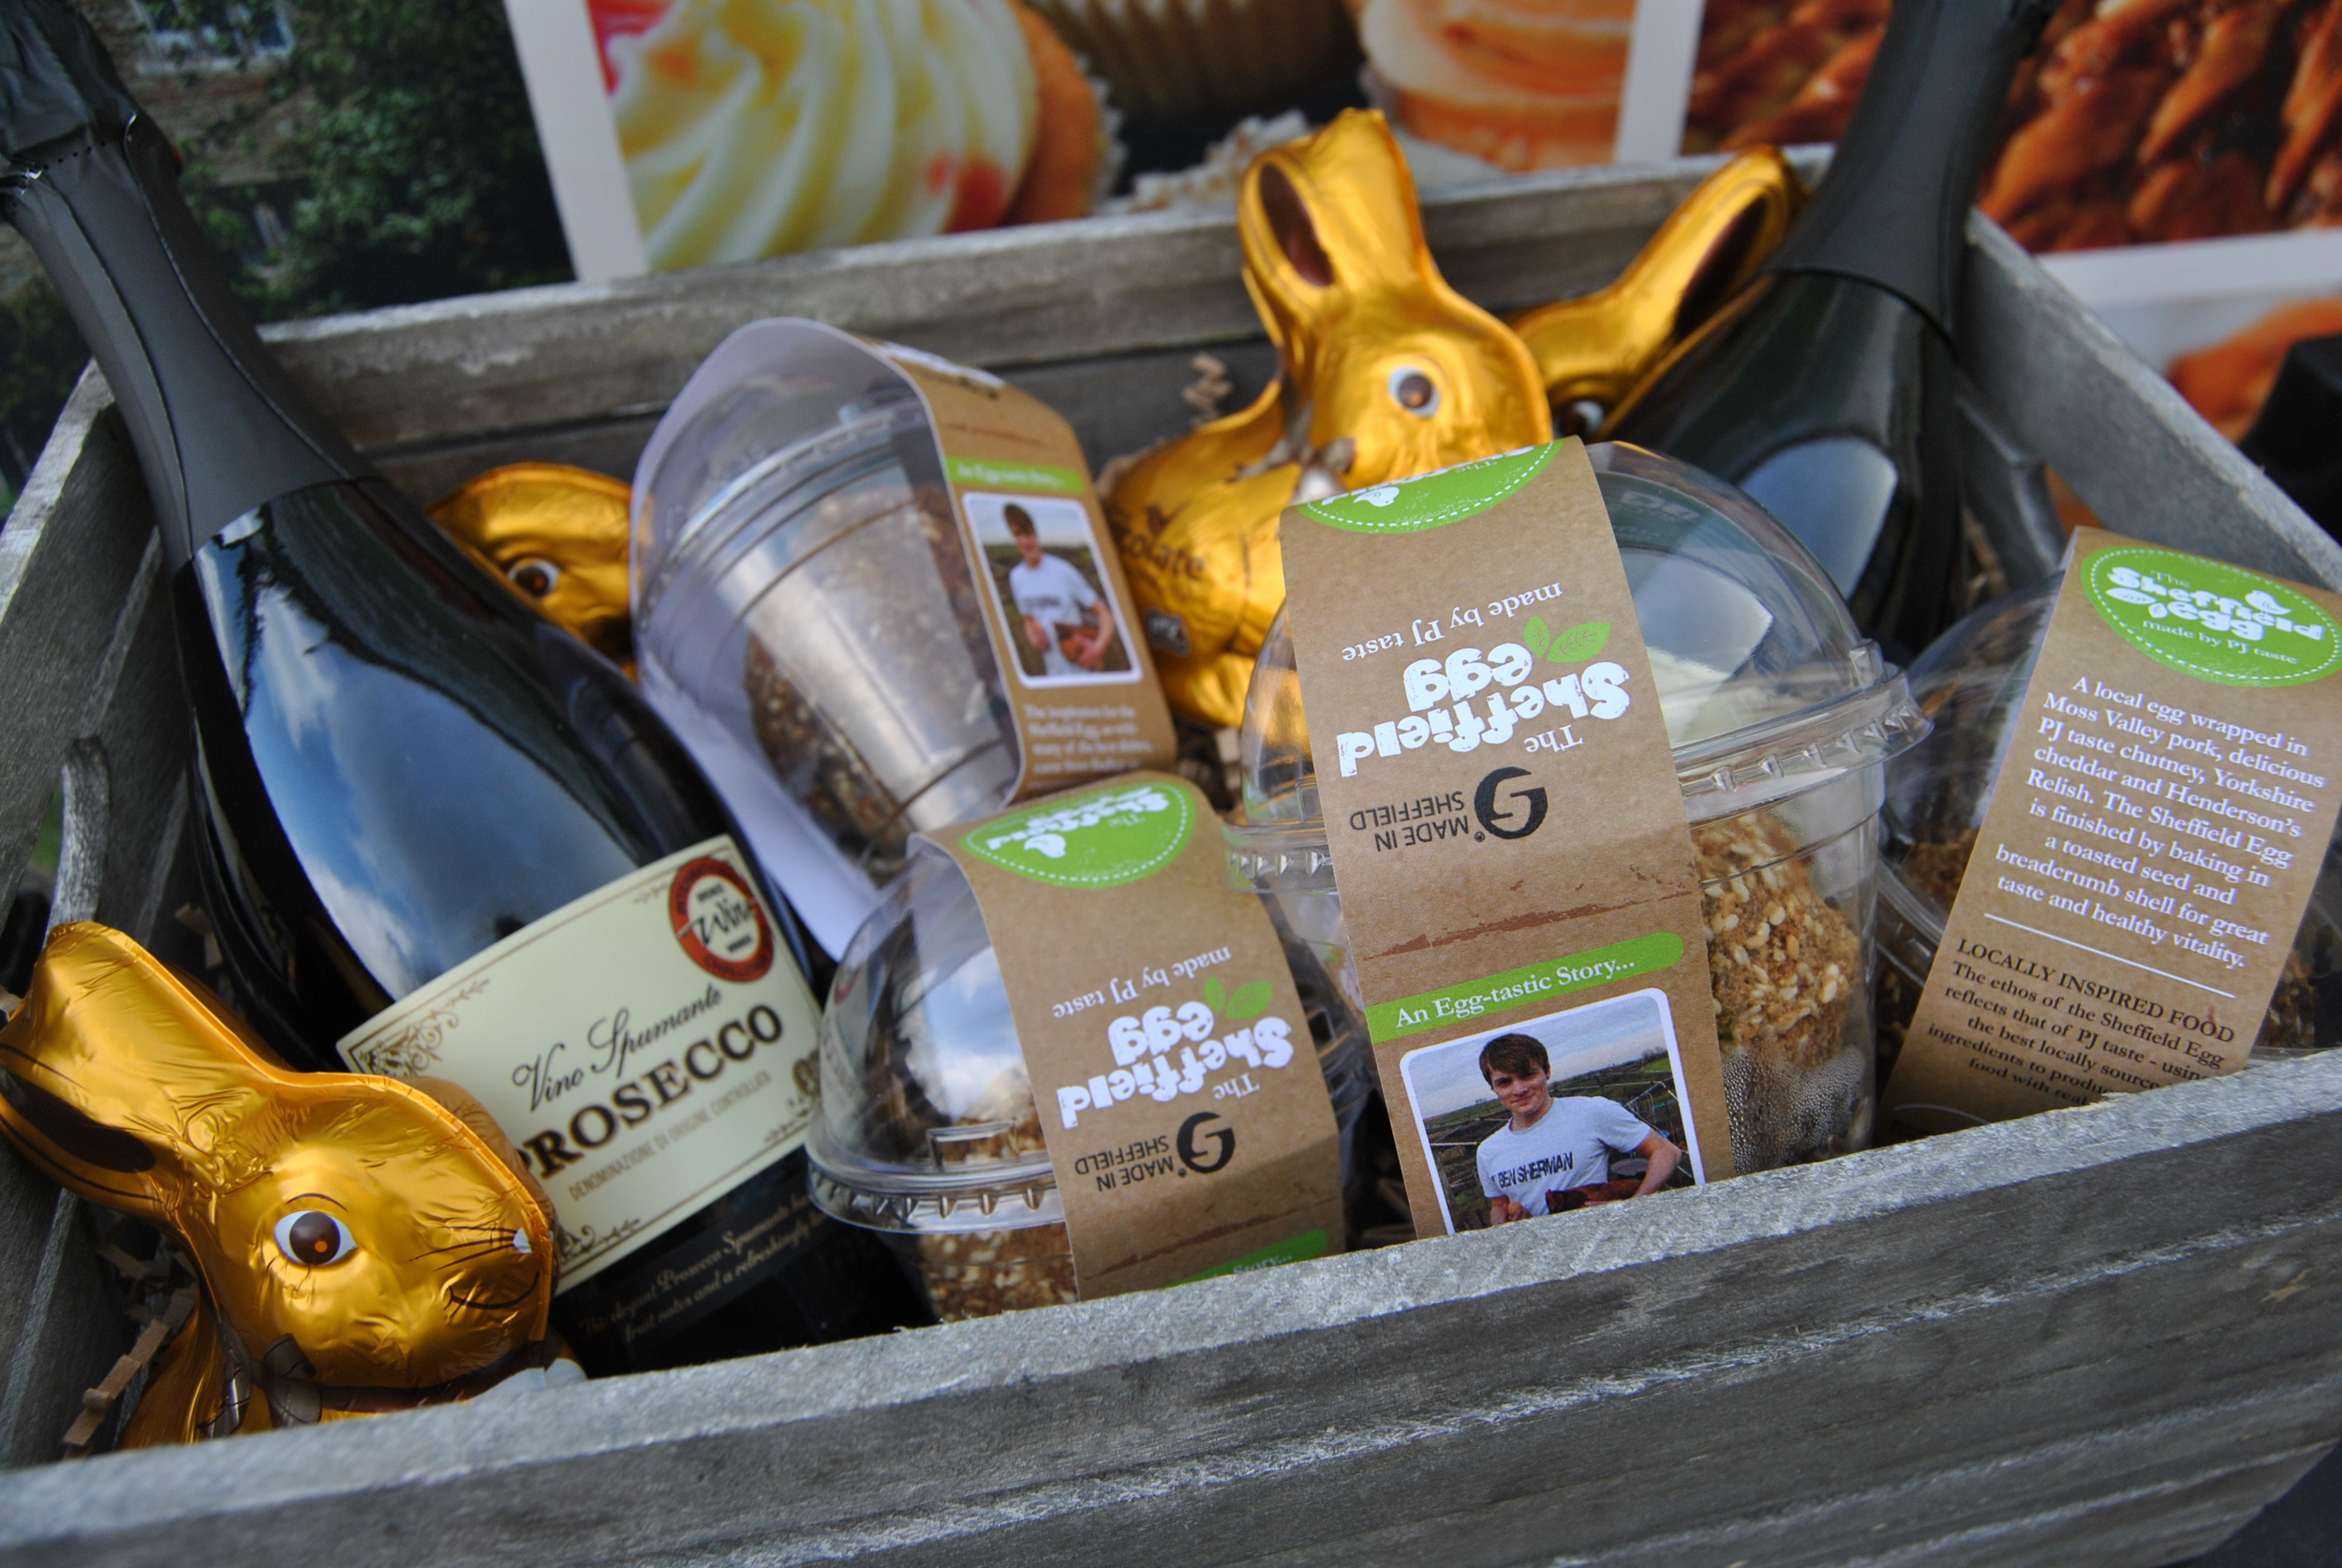 Donate now for a chance to win this hamper for Easter - 2 bottles Prosseco, Easter Bunnies and 4 Sheffield Eggs